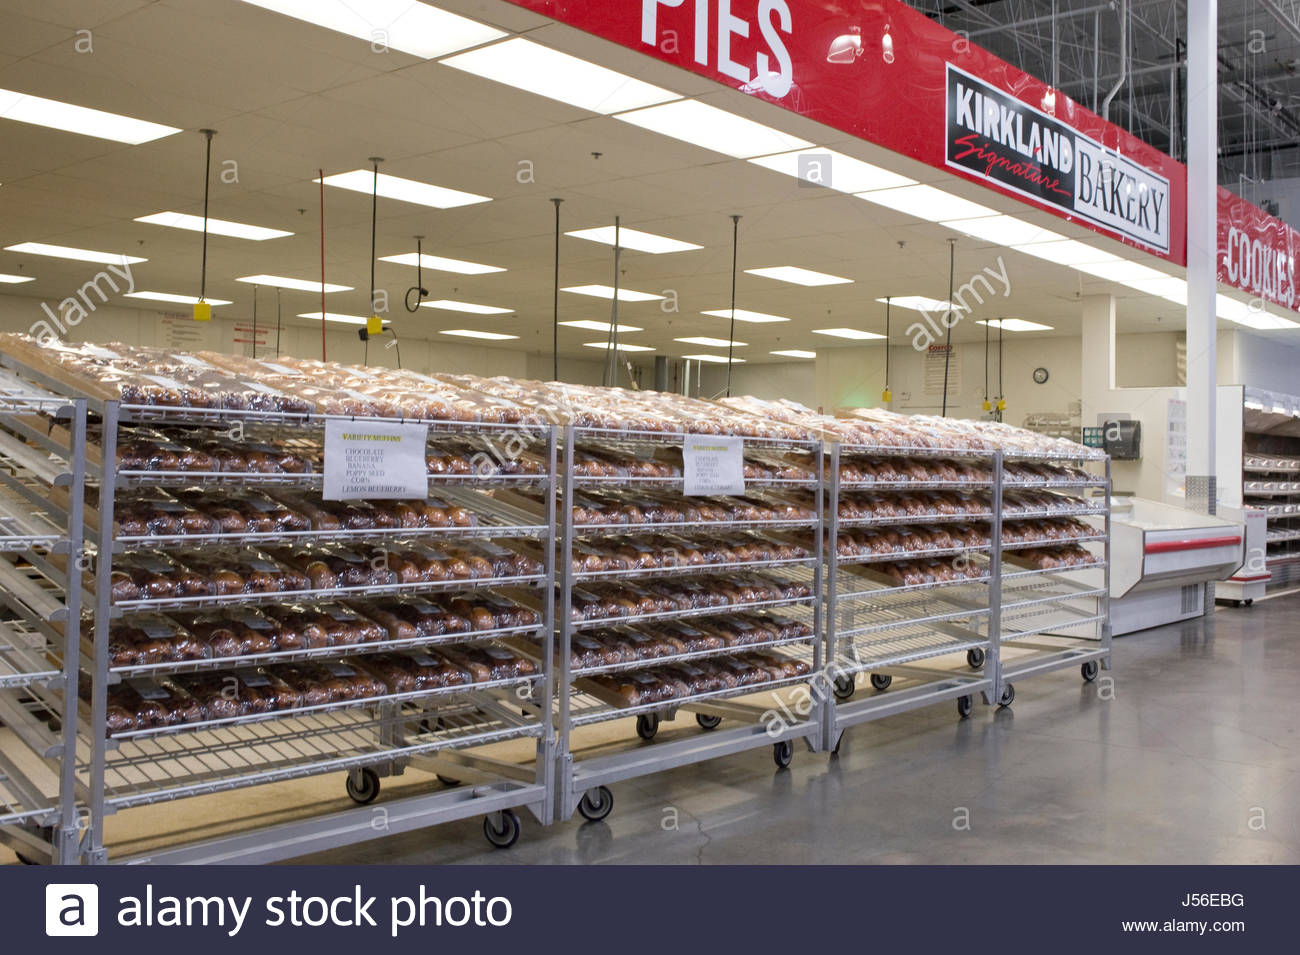 Racks Of Freshly Baked Goods On Display At Costco Warehouse